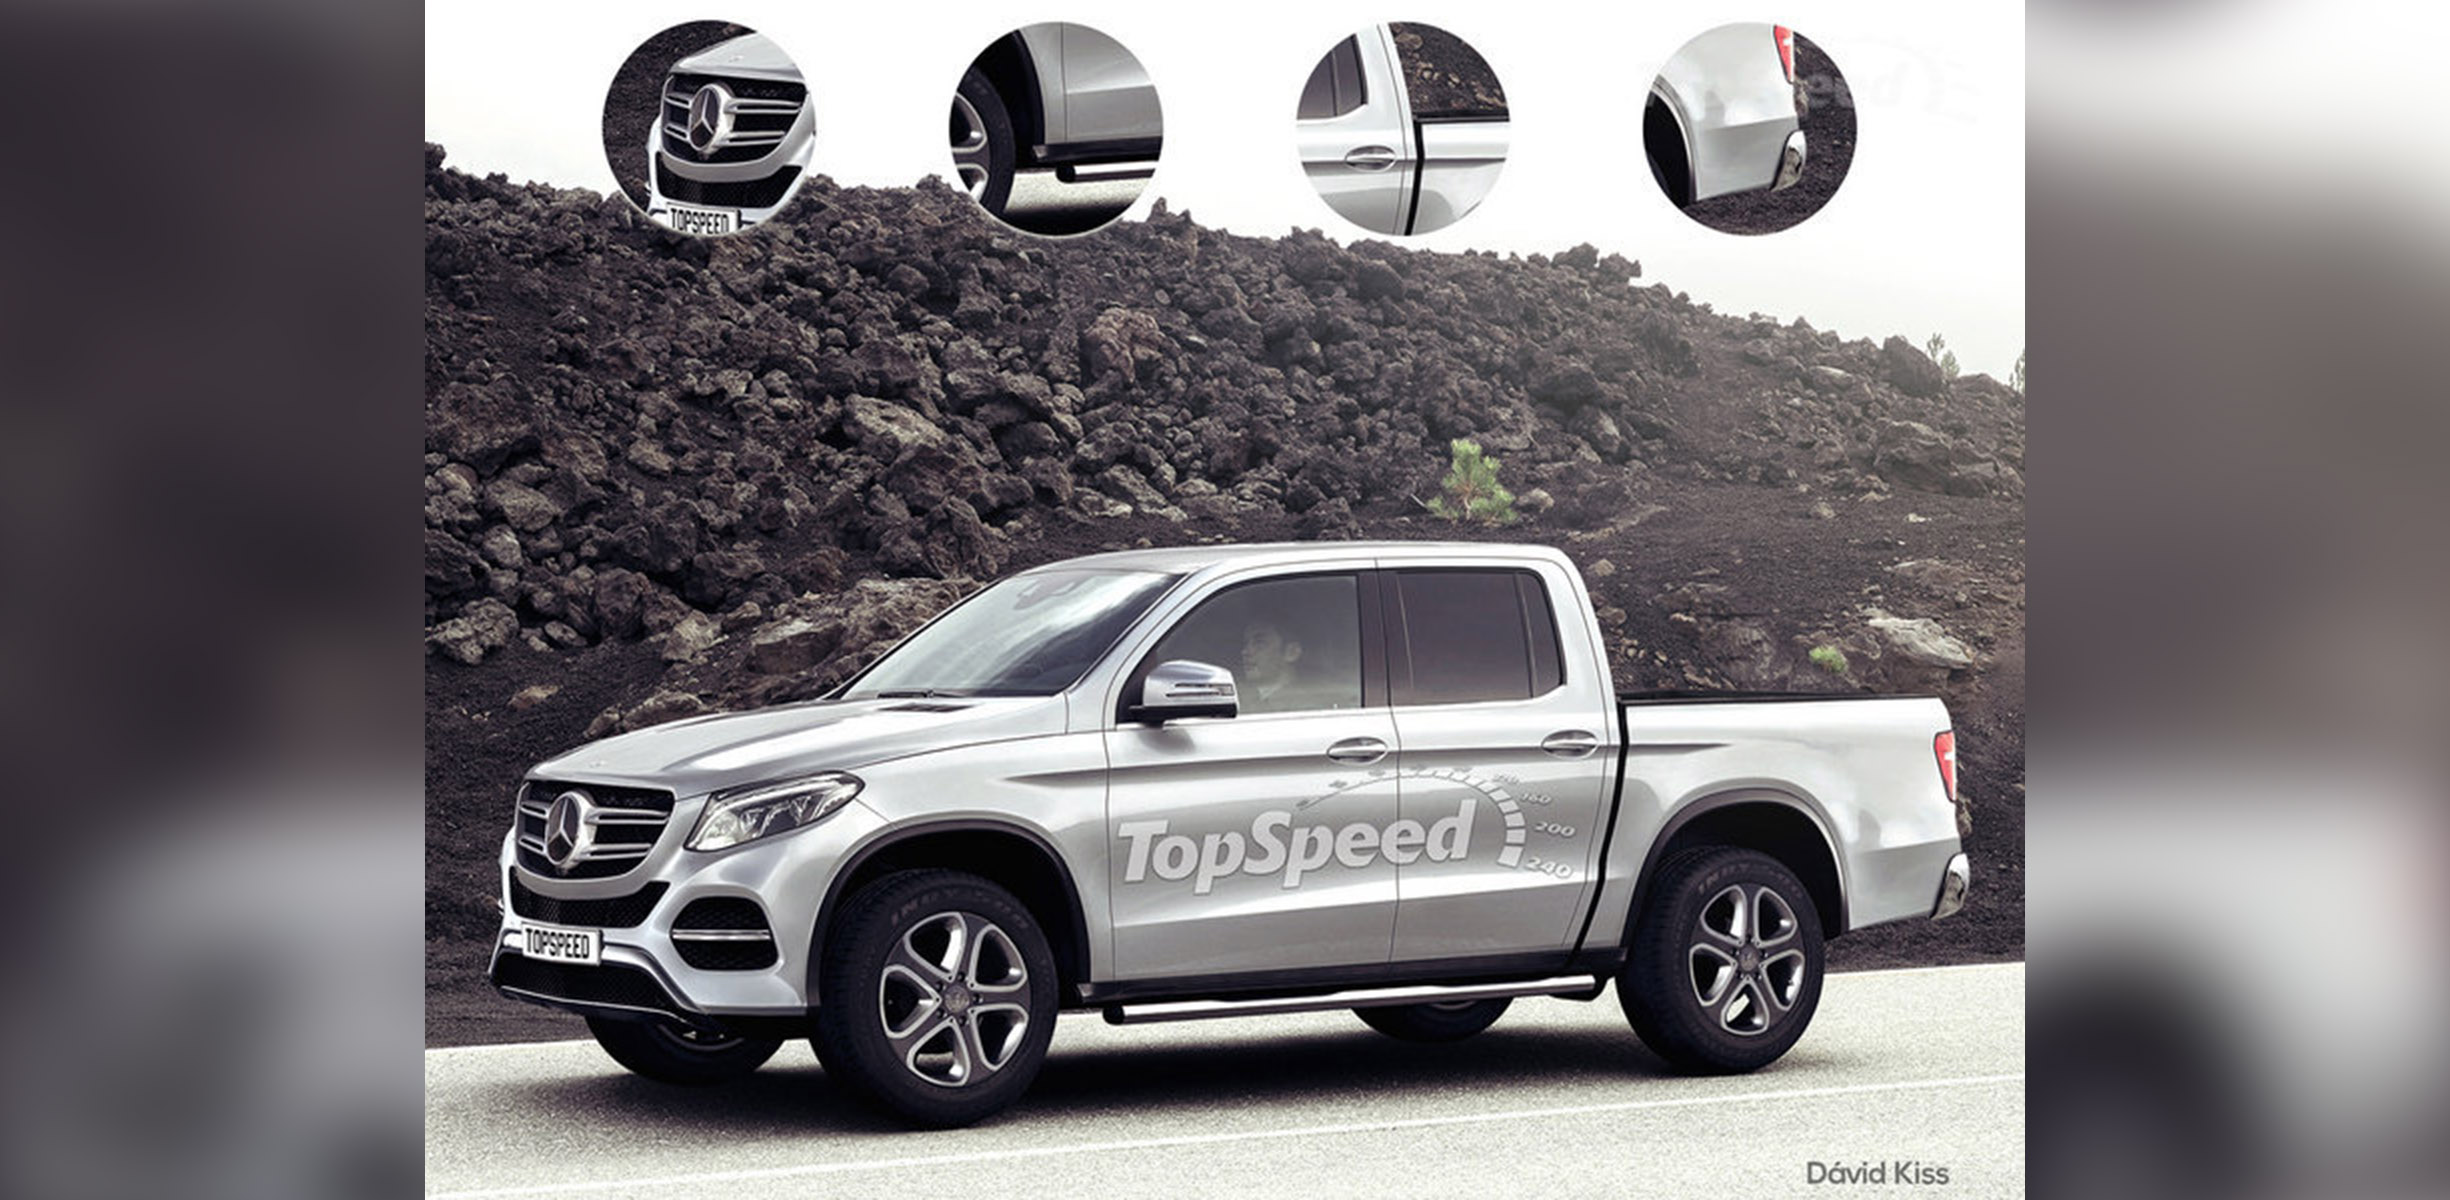 Mercedes benz ute will share components with navara be for Where mercedes benz cars are made